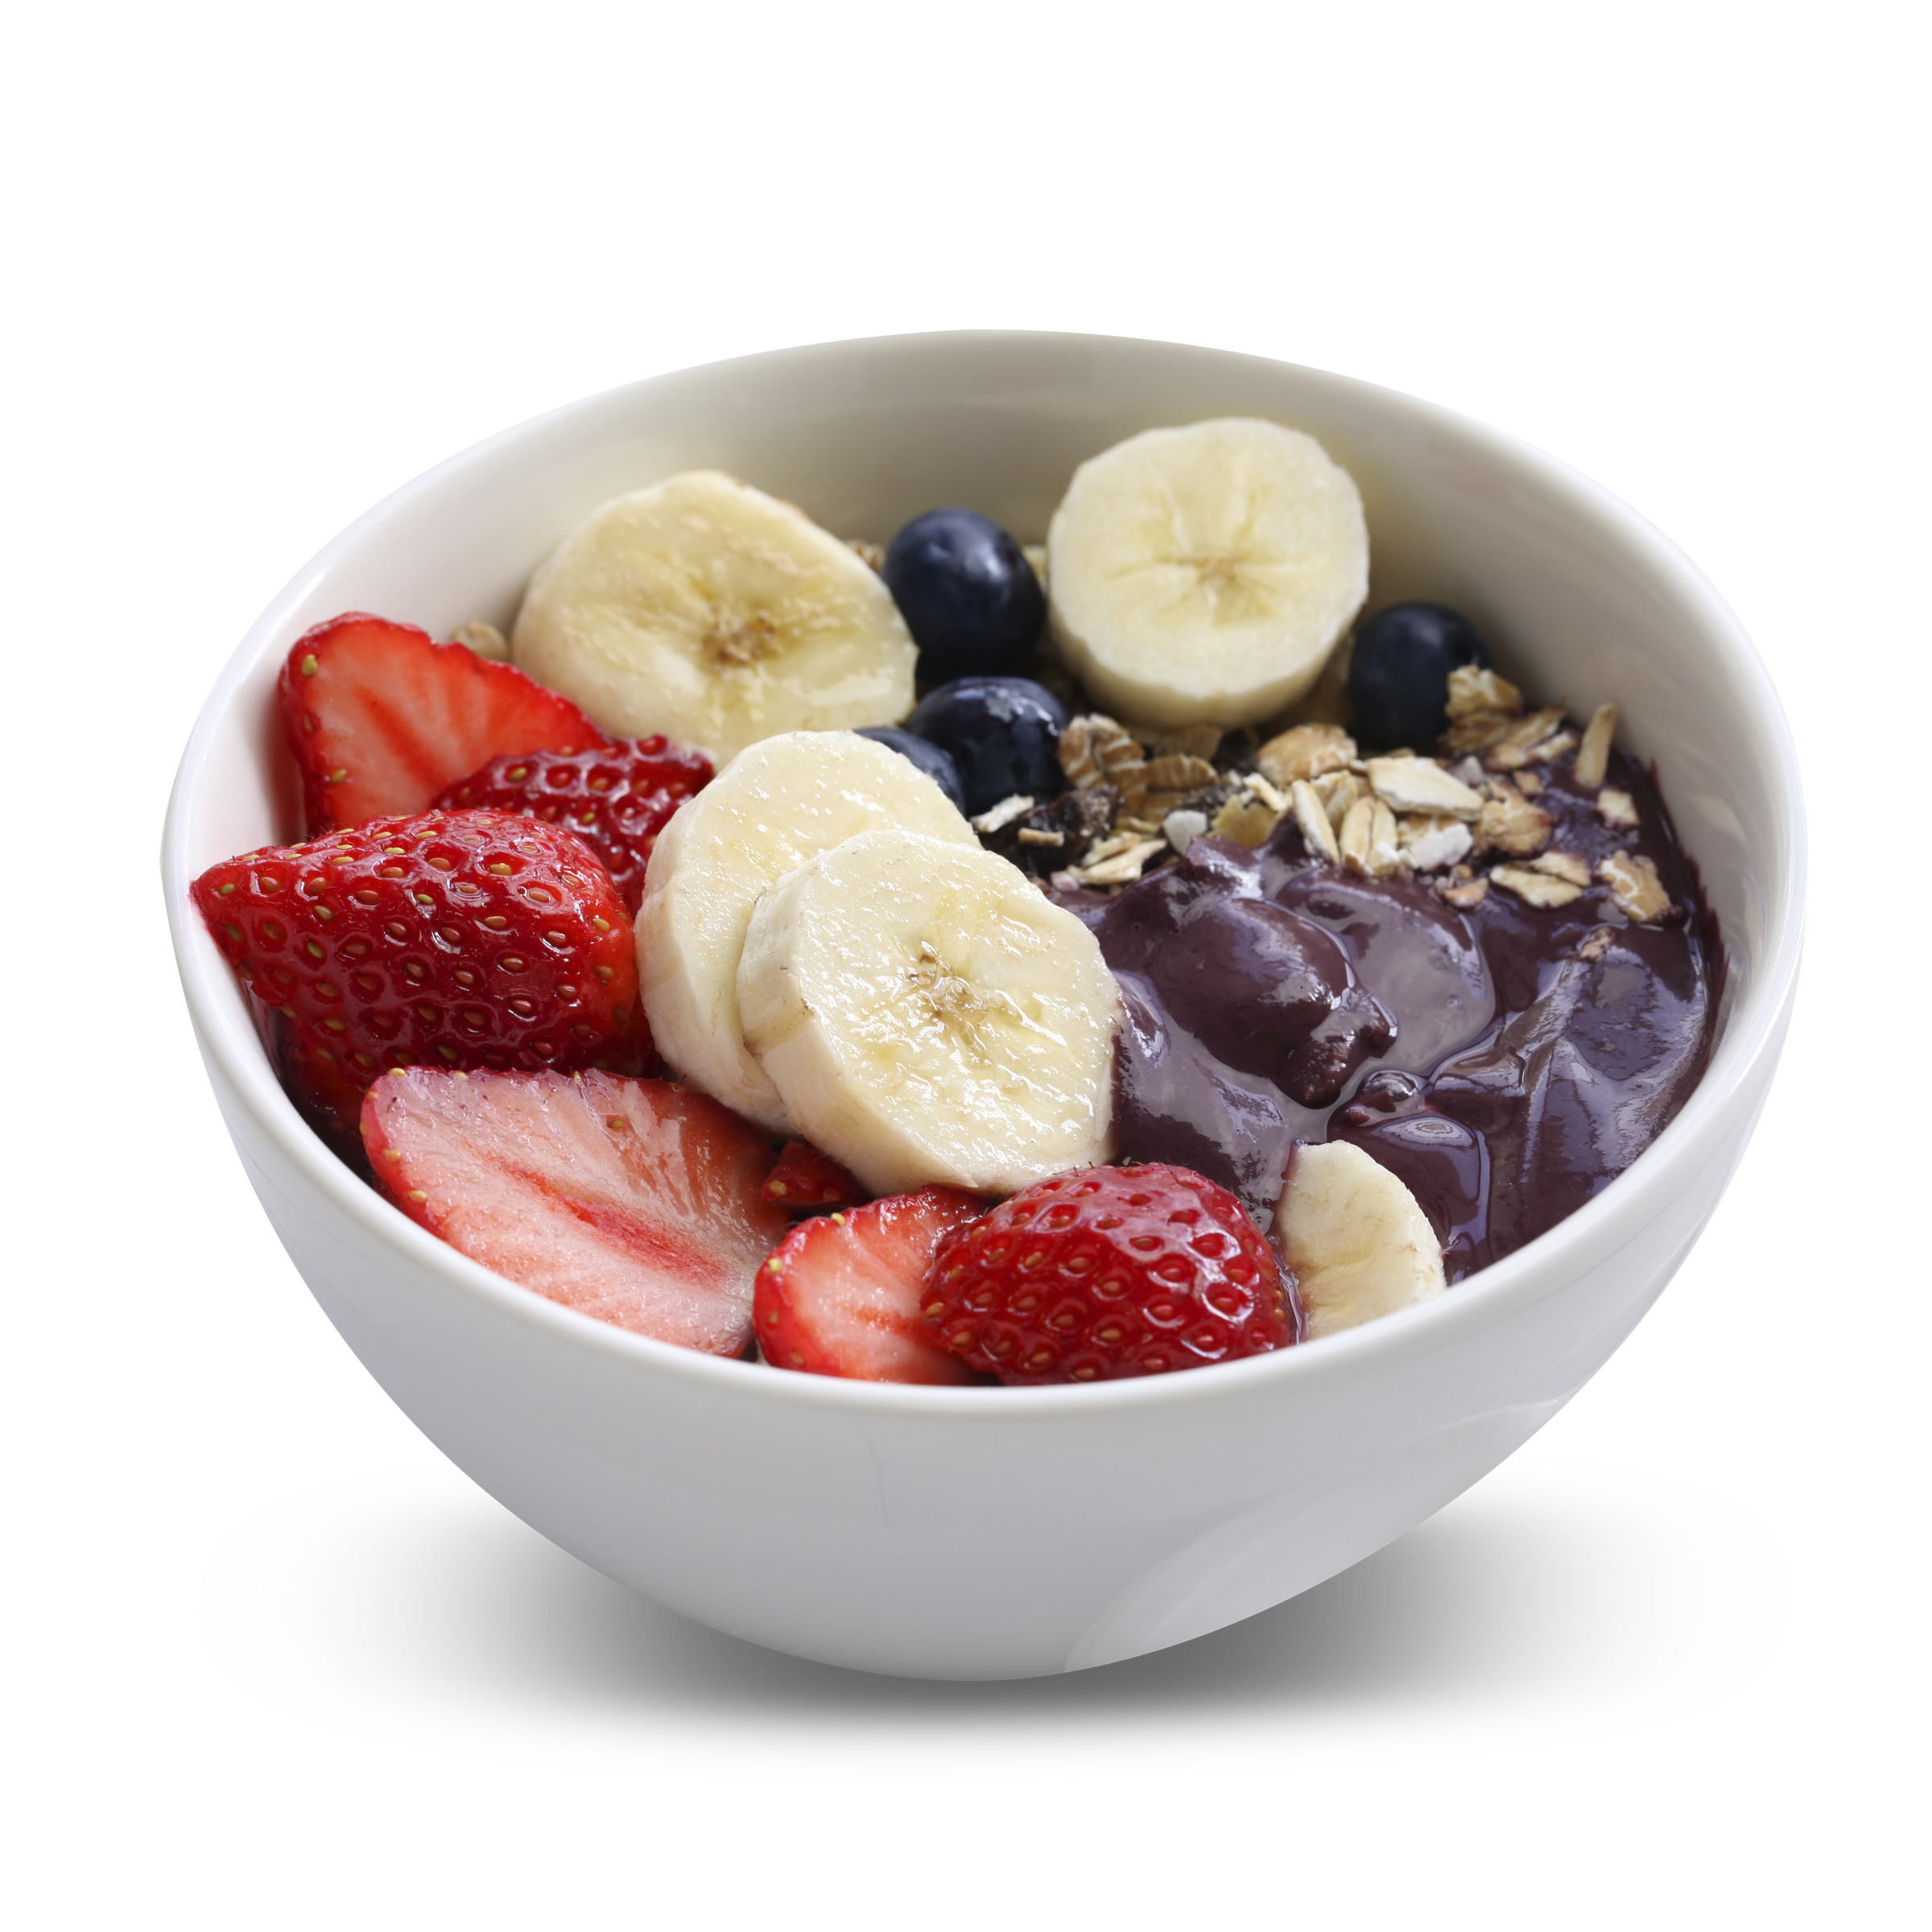 Watch Granola Nutrition Facts and Health Benefits video